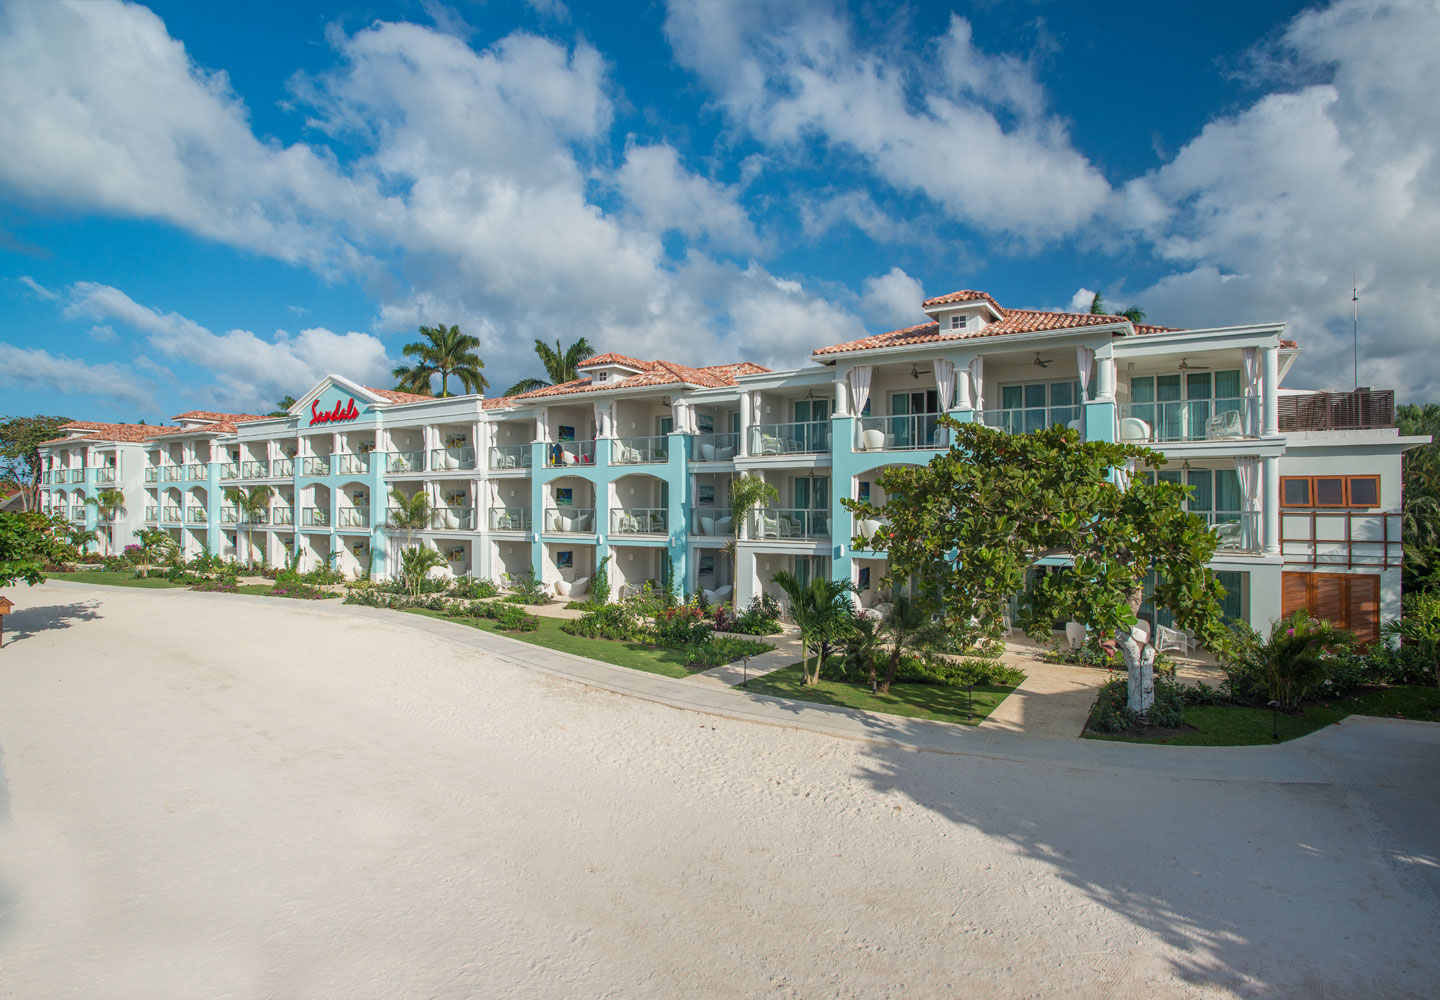 Travel Agency All-Inclusive Resort Sandals Montego Bay 010